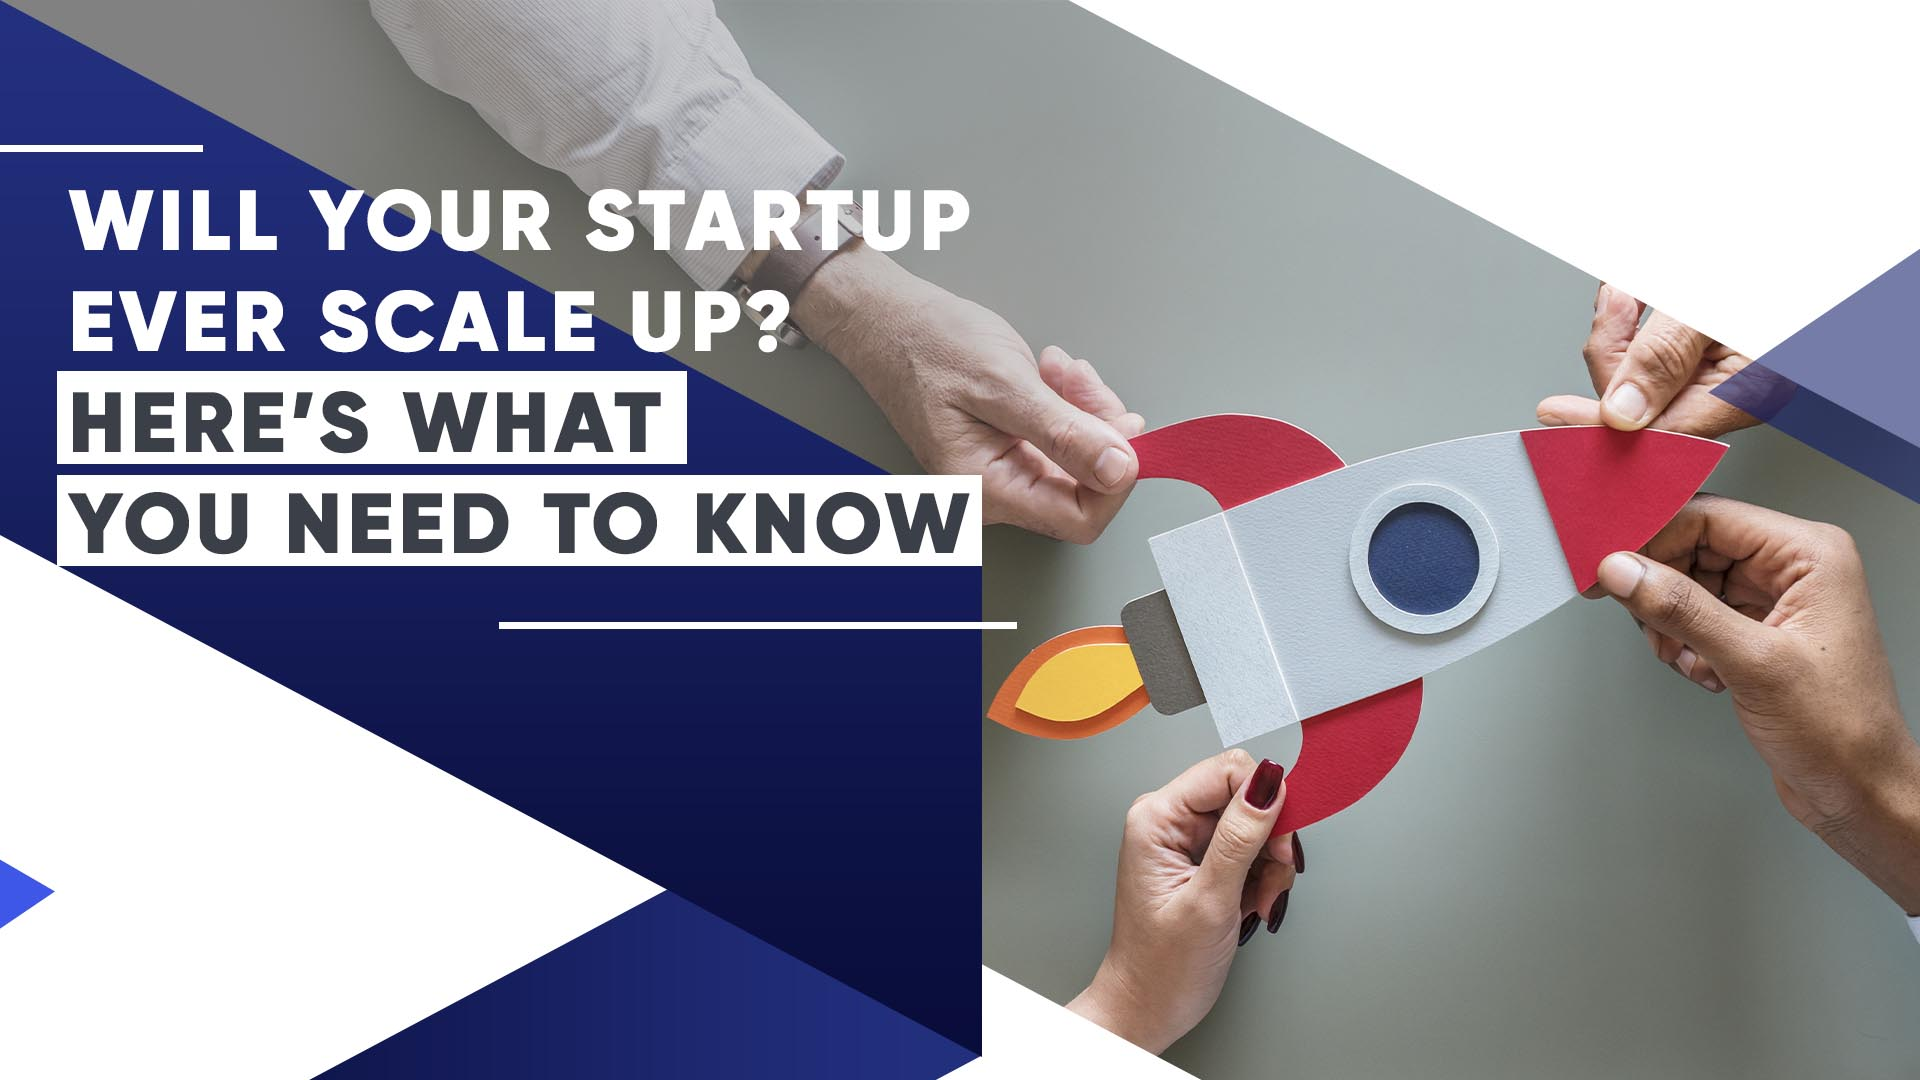 Will Your Startup Ever Scale Up? Here's What You Need To Know